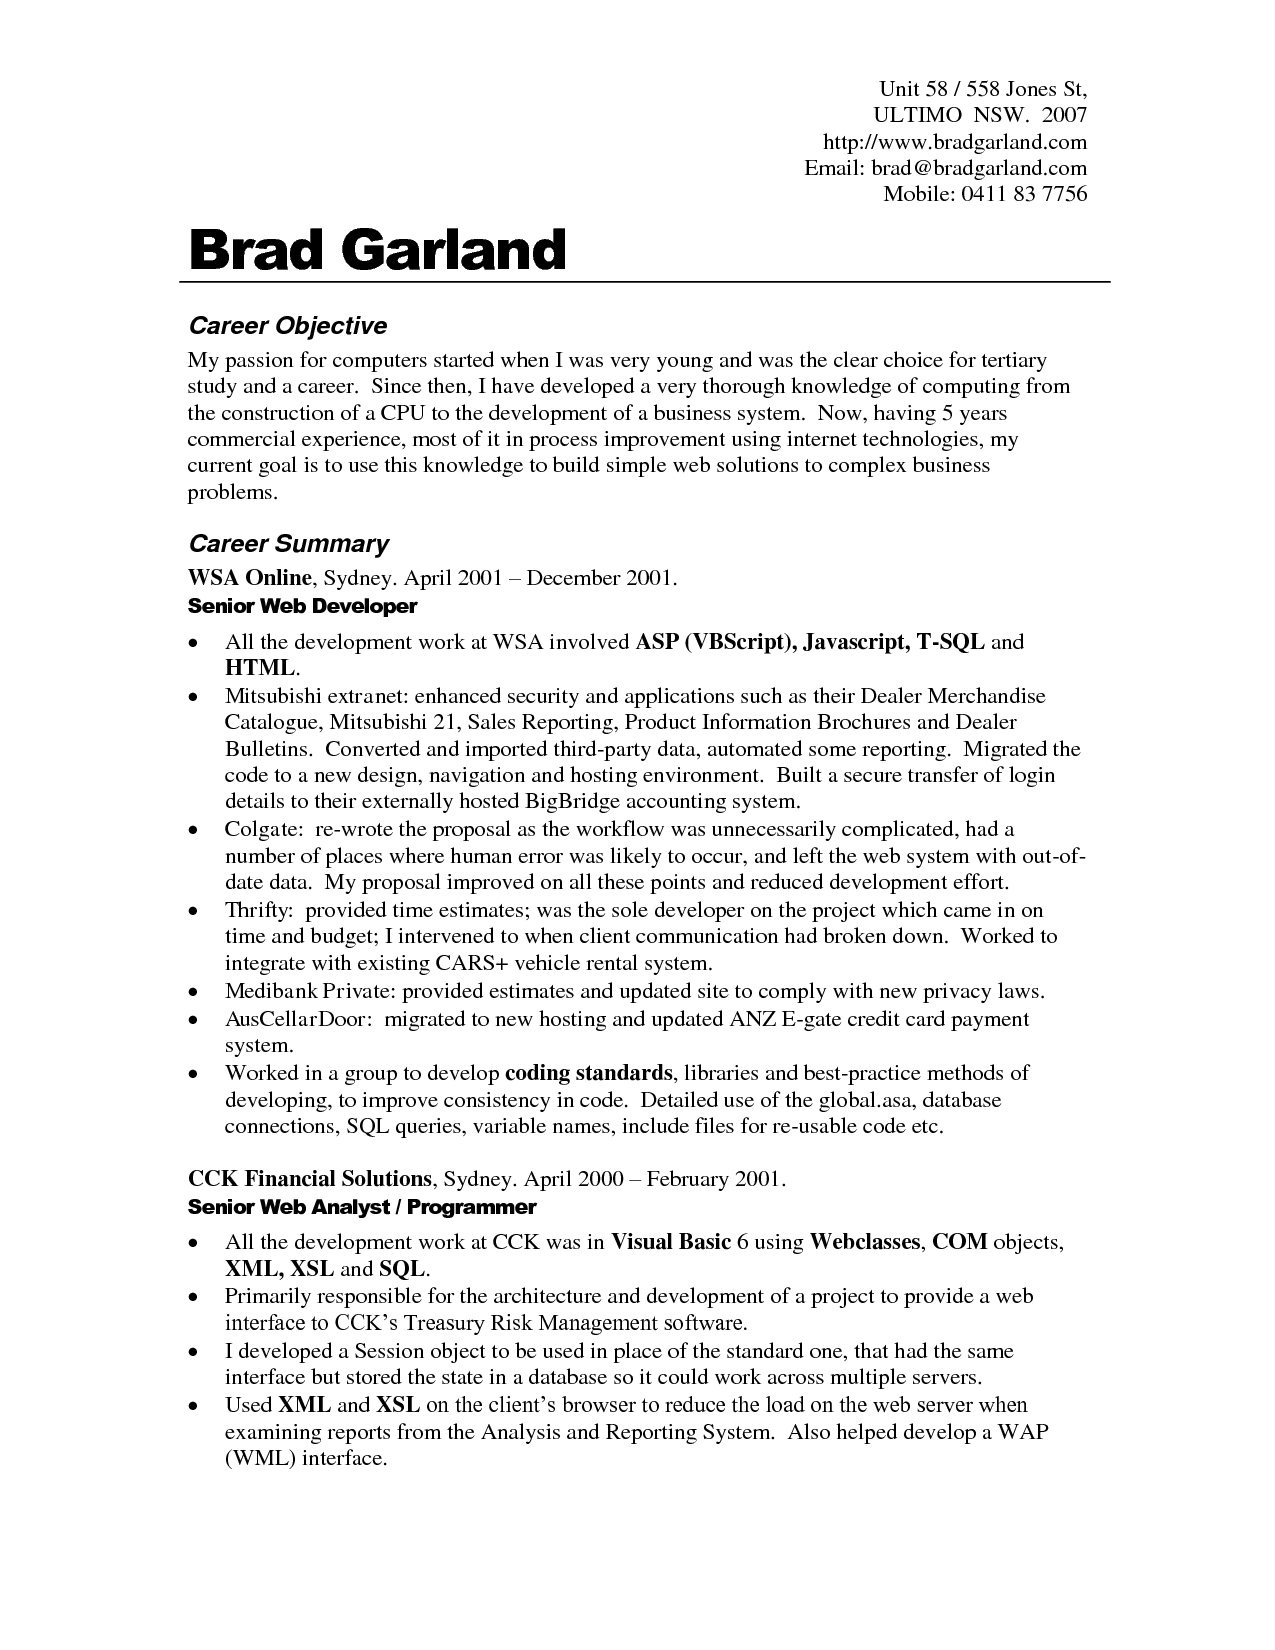 example of objective on a resumes resume objectives examples best - How To Write A Good Objective On A Resume 2